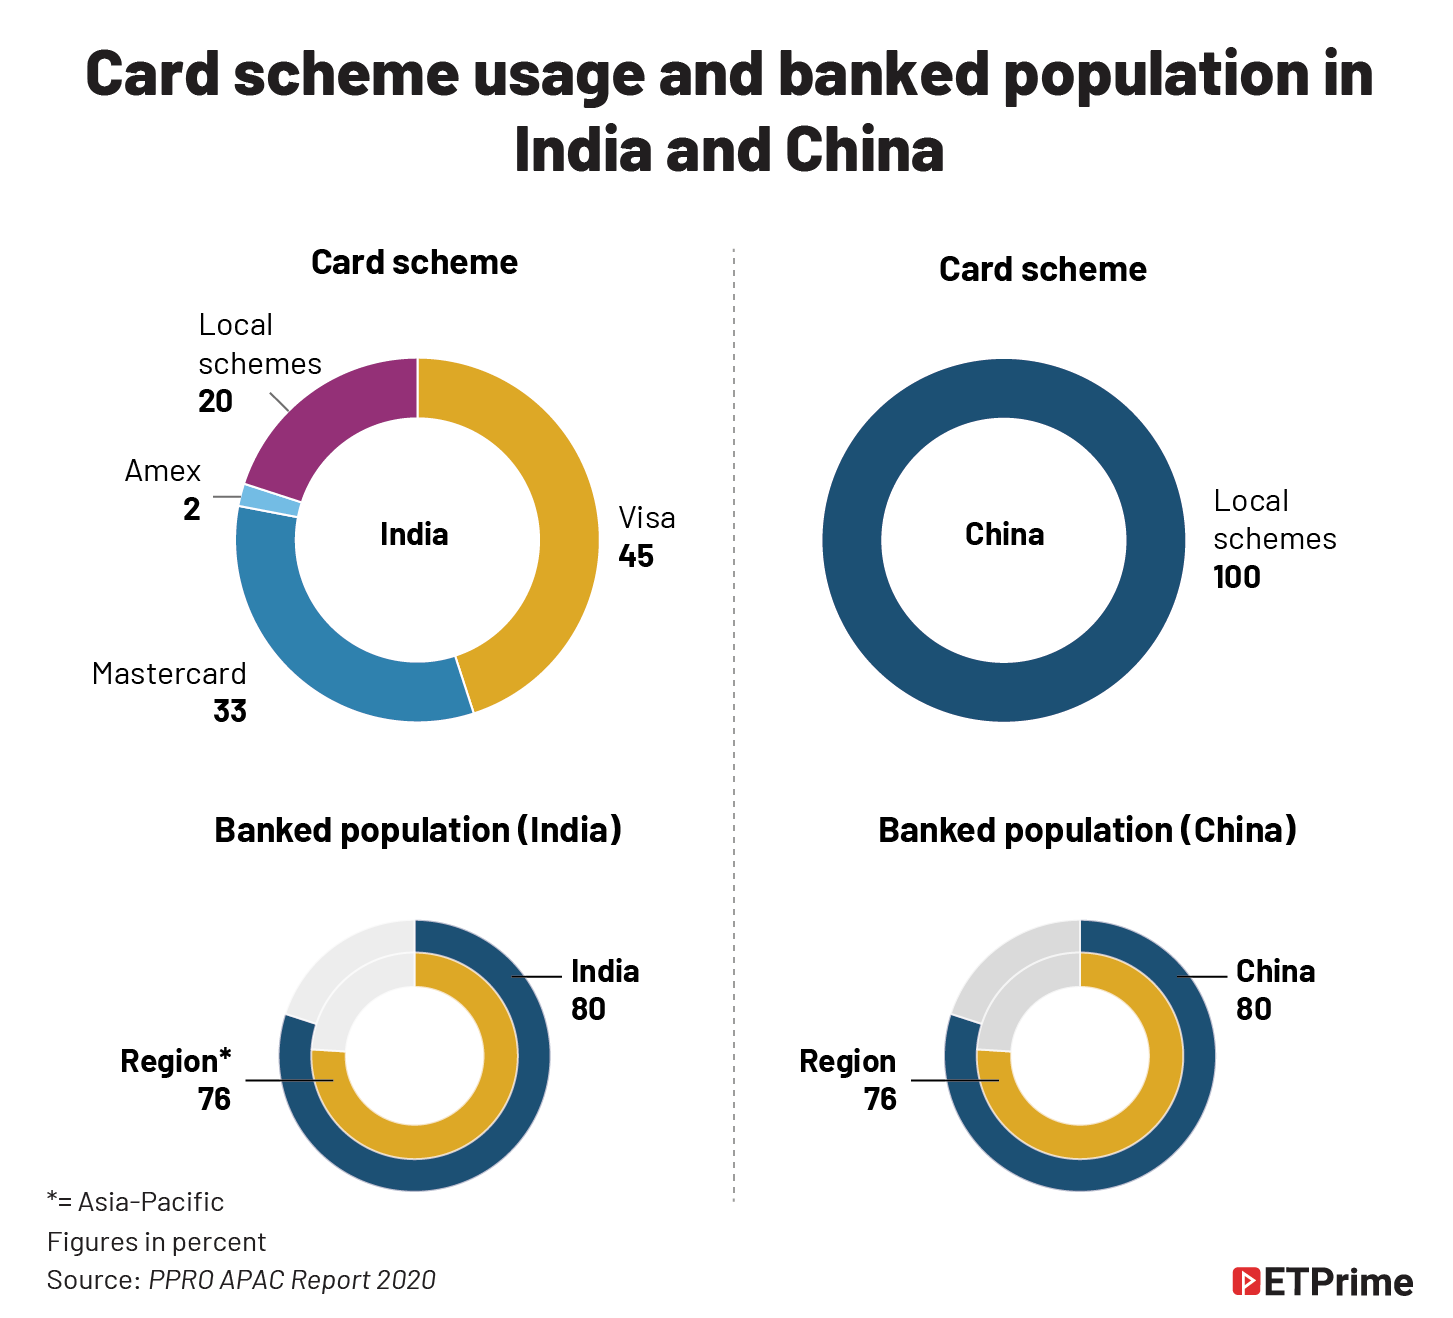 Card schemes usage and banked population in India and China@2x